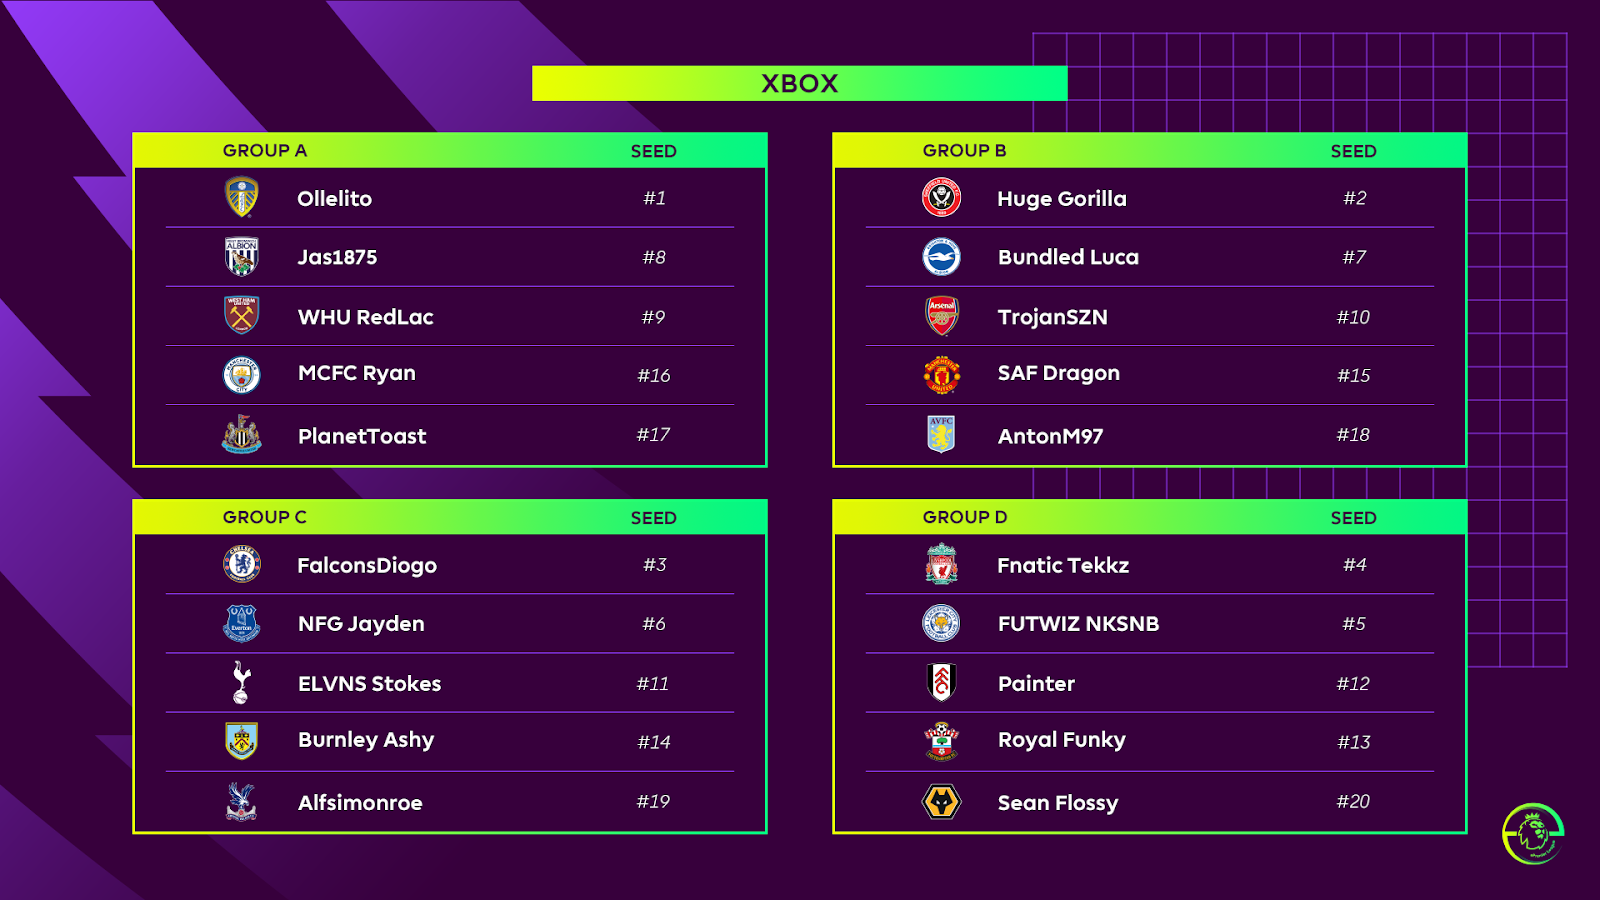 The Xbox groups in the ePremier League 2020/21 Finals